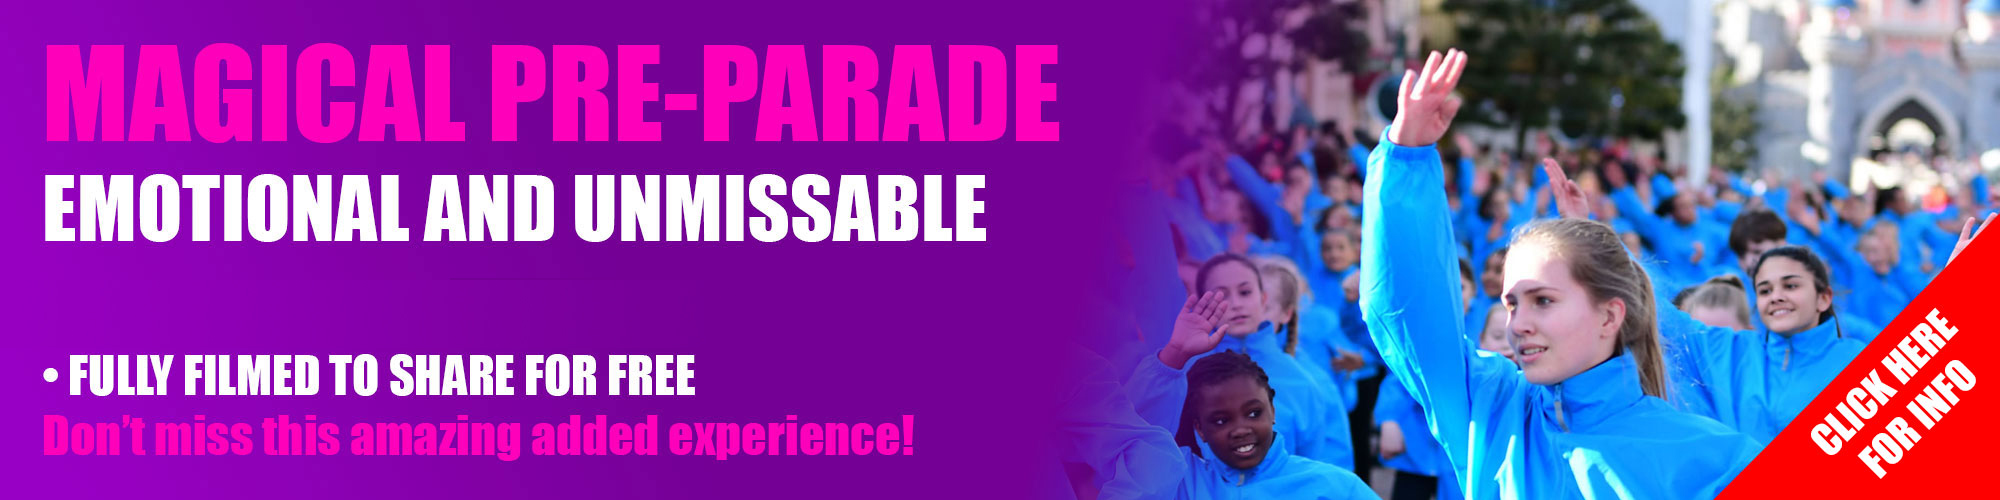 Ever dreamed of being part of Disney's Parade programme? Want to join dancers from all over the world in a specially choreographed pre-parade through the Disneyland Park? Then IFDPA is the event for you. Every IFDPA group is given the option to take part in our amazing pre-parade.